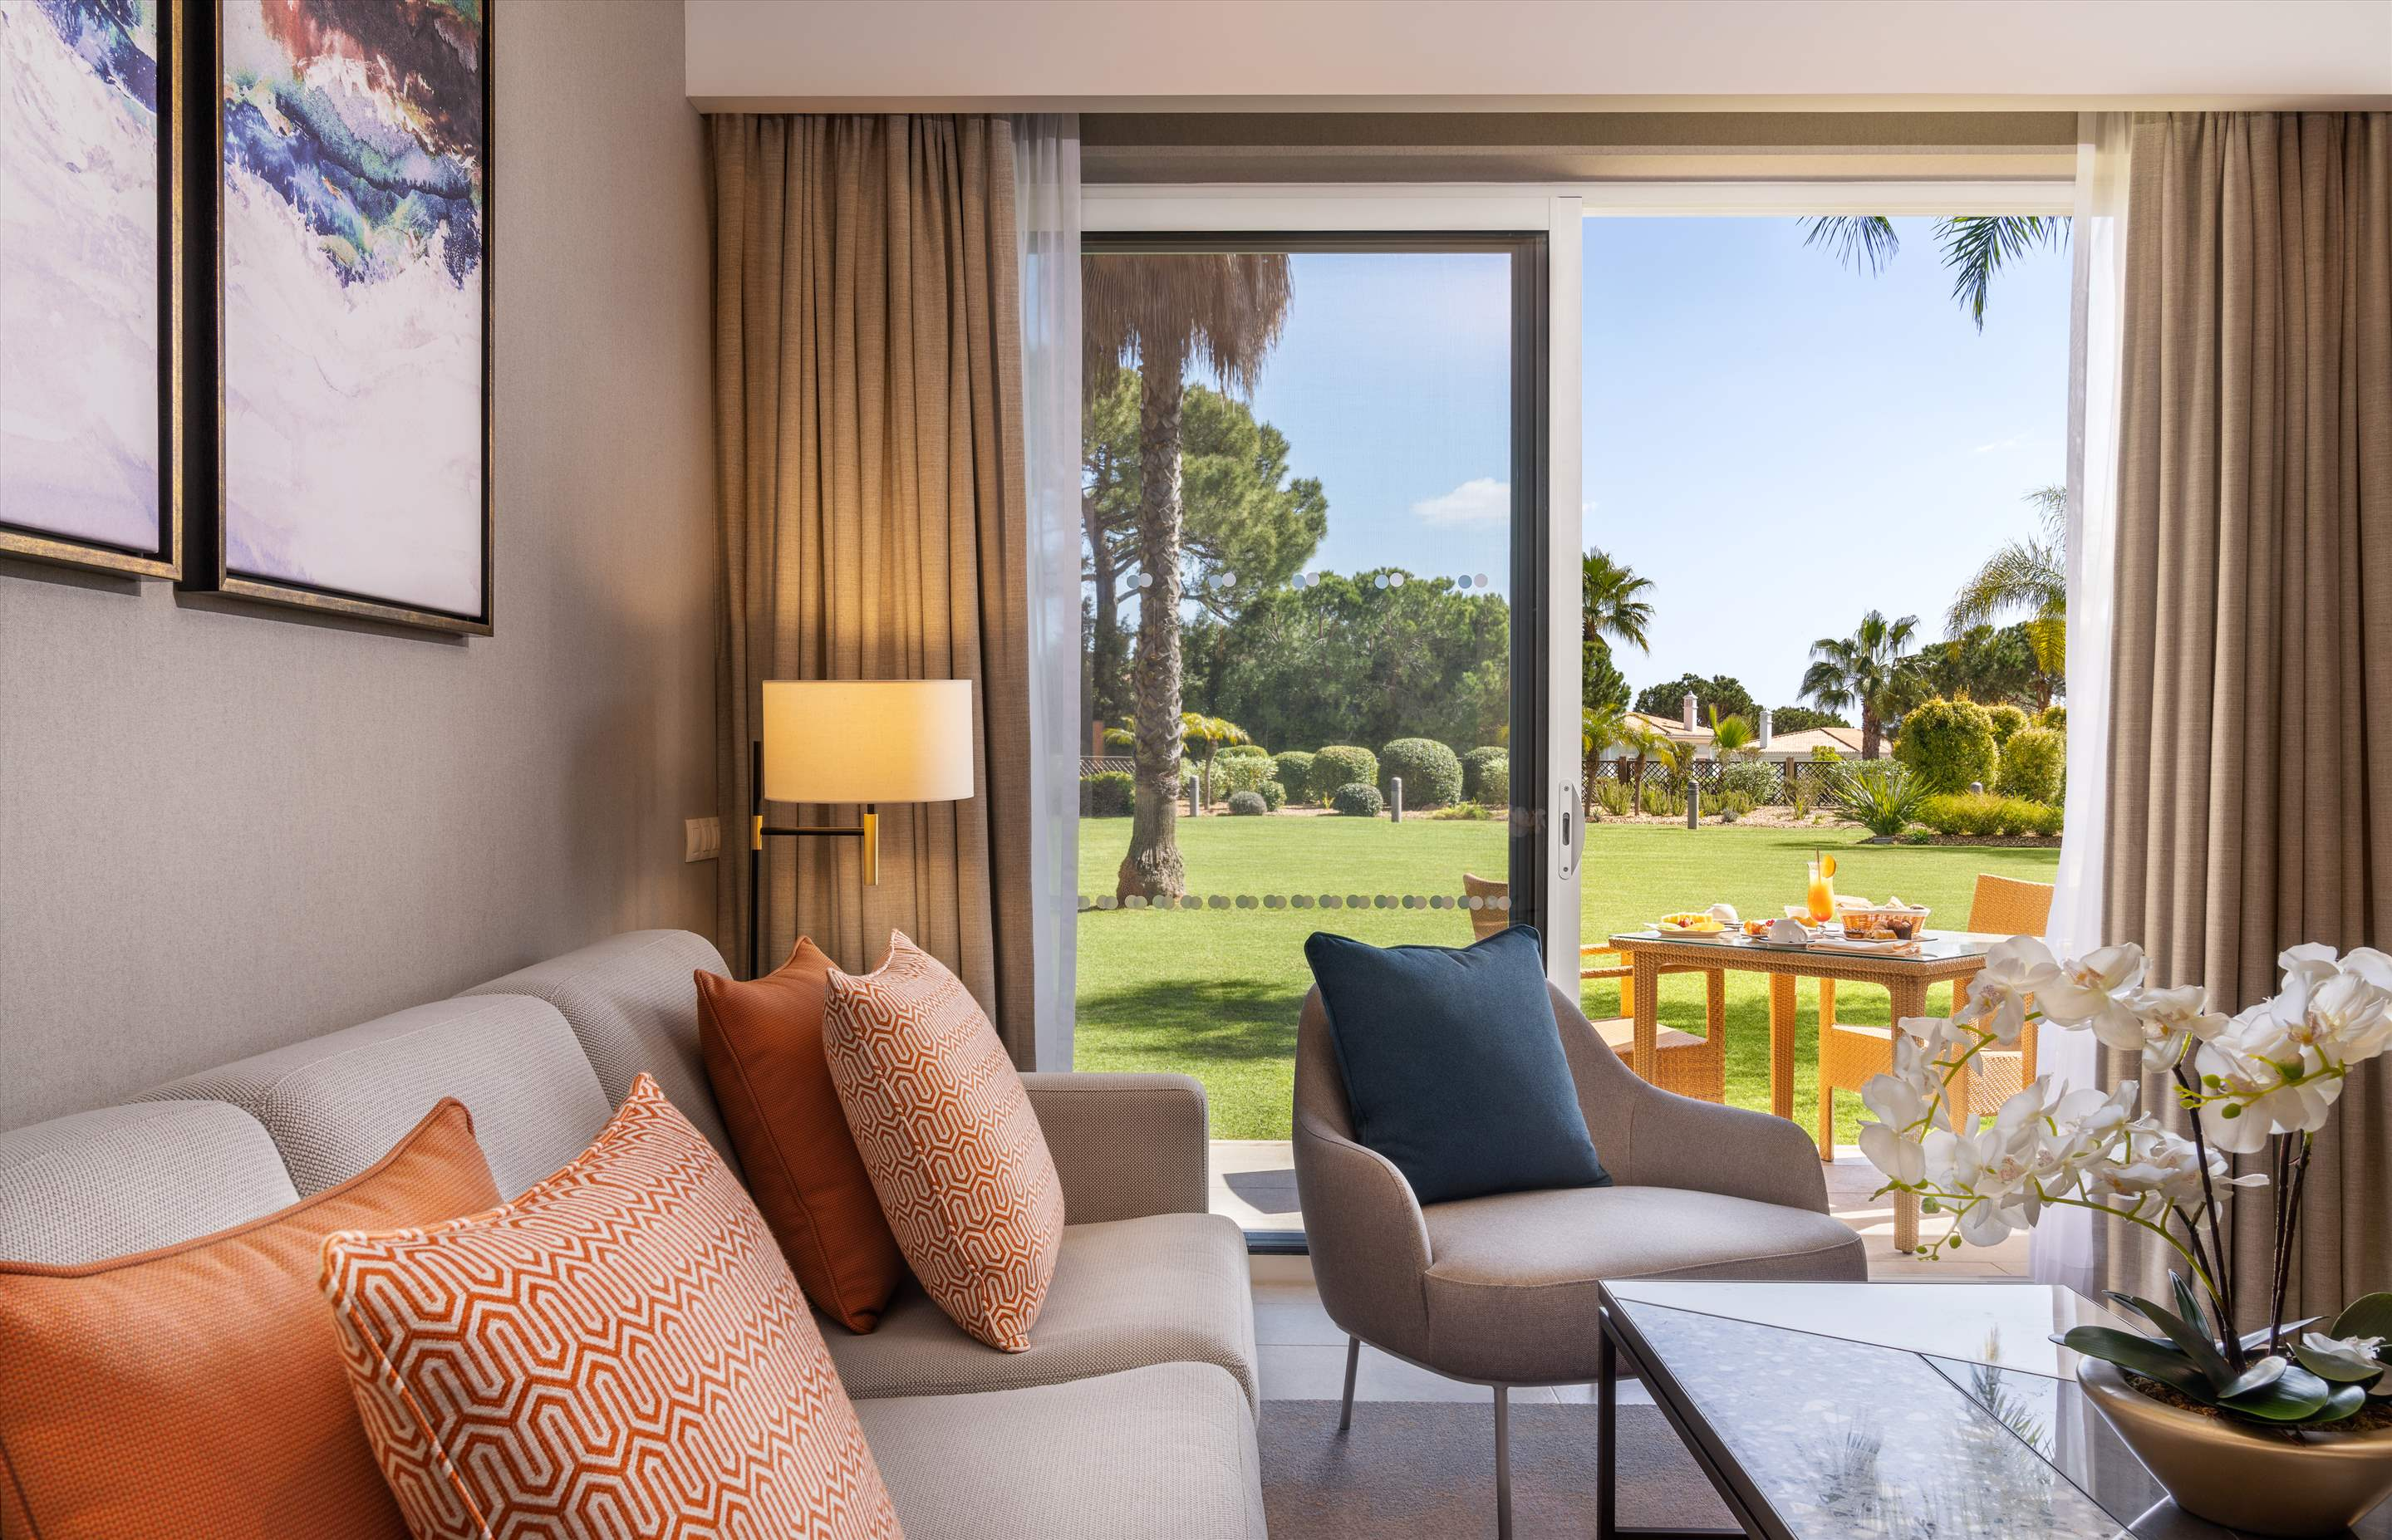 Wyndham Grand Algarve 2 Bedroom, Deluxe Family Suite, Pool Side, Room Only, 2 bedroom apartment in Wyndham Grand Algarve, Algarve Photo #2